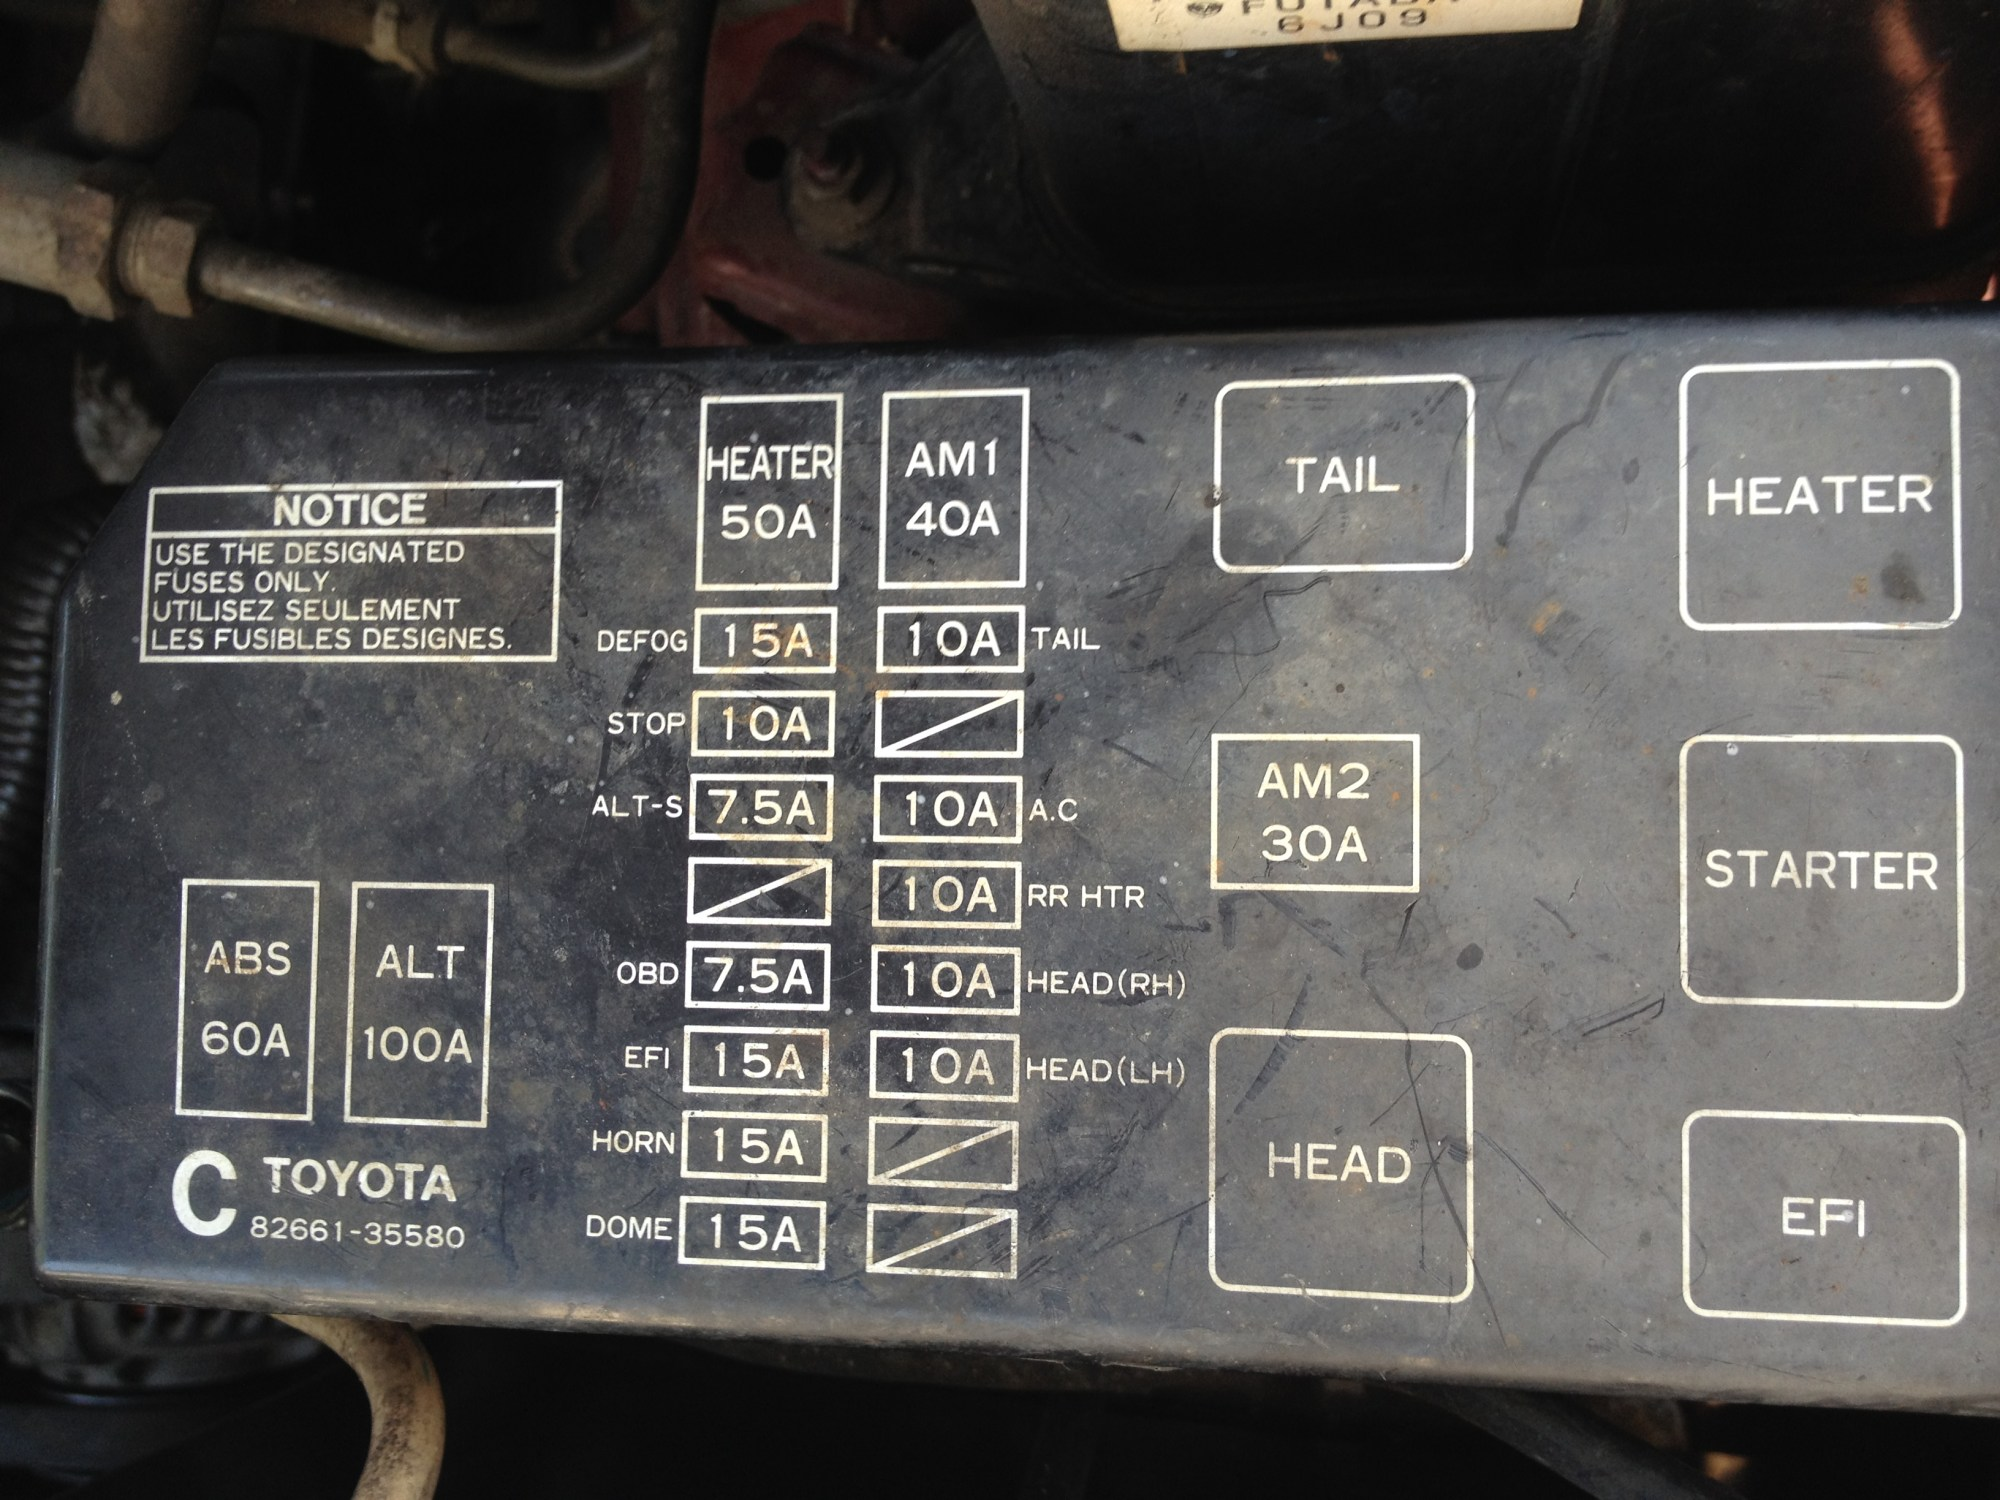 hight resolution of 1995 toyota 4runner fuse diagram wiring diagram details95 toyota pickup fuse box diagram wiring diagram 1995